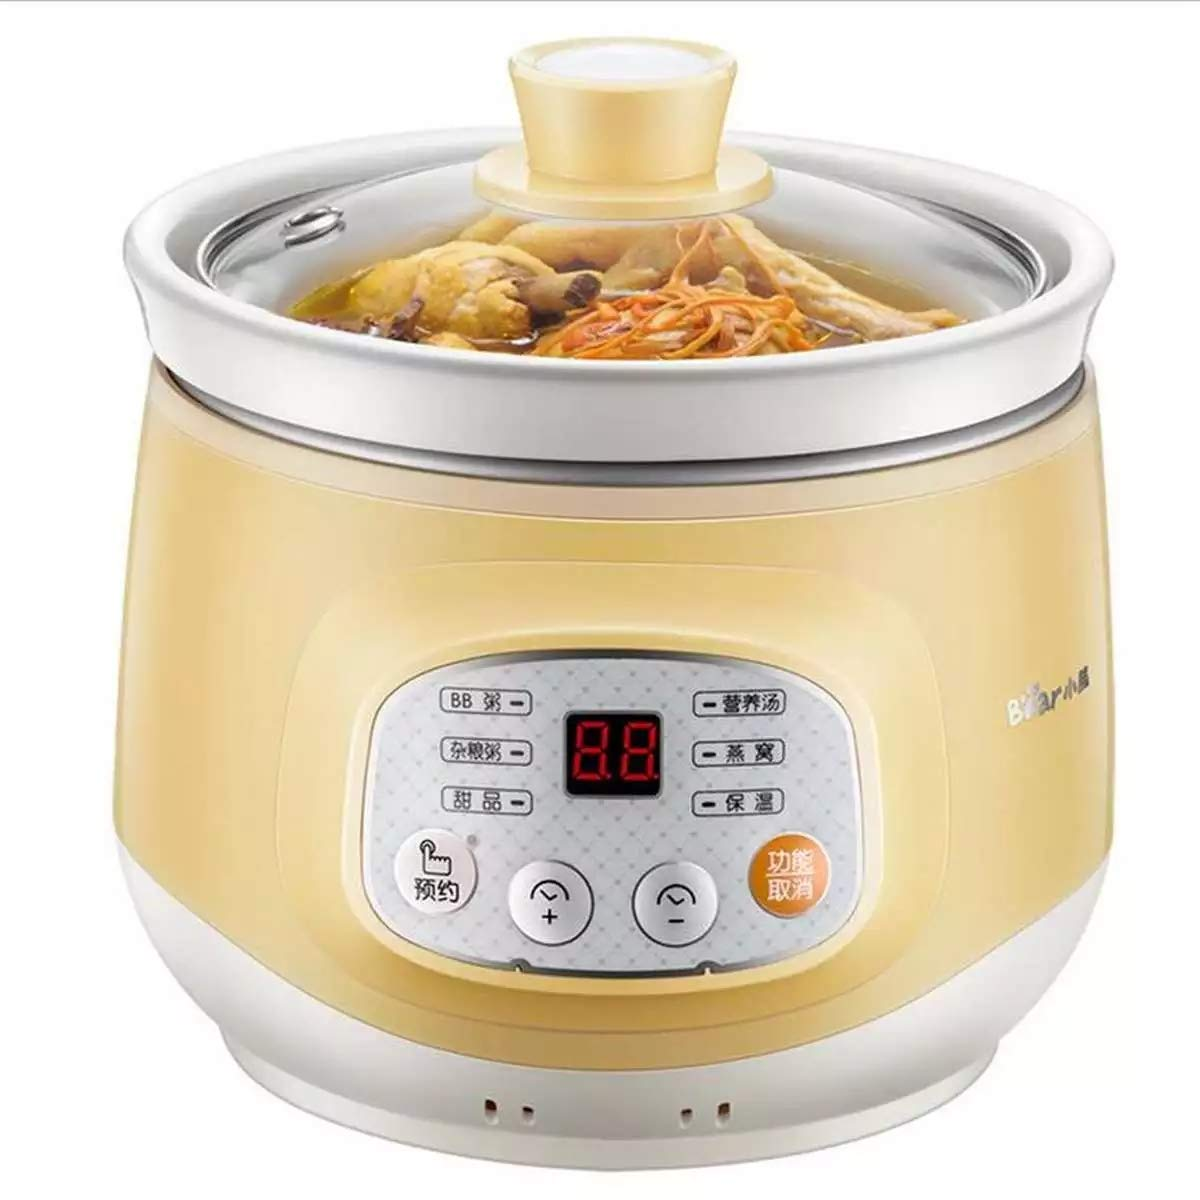 LEED 100W Electric Slow Cooker Ceramic Mini Fully Automatic Baby Soup Pot Congee Bird's Nest Stew Pot Multi-Function Safe Slow Cooker